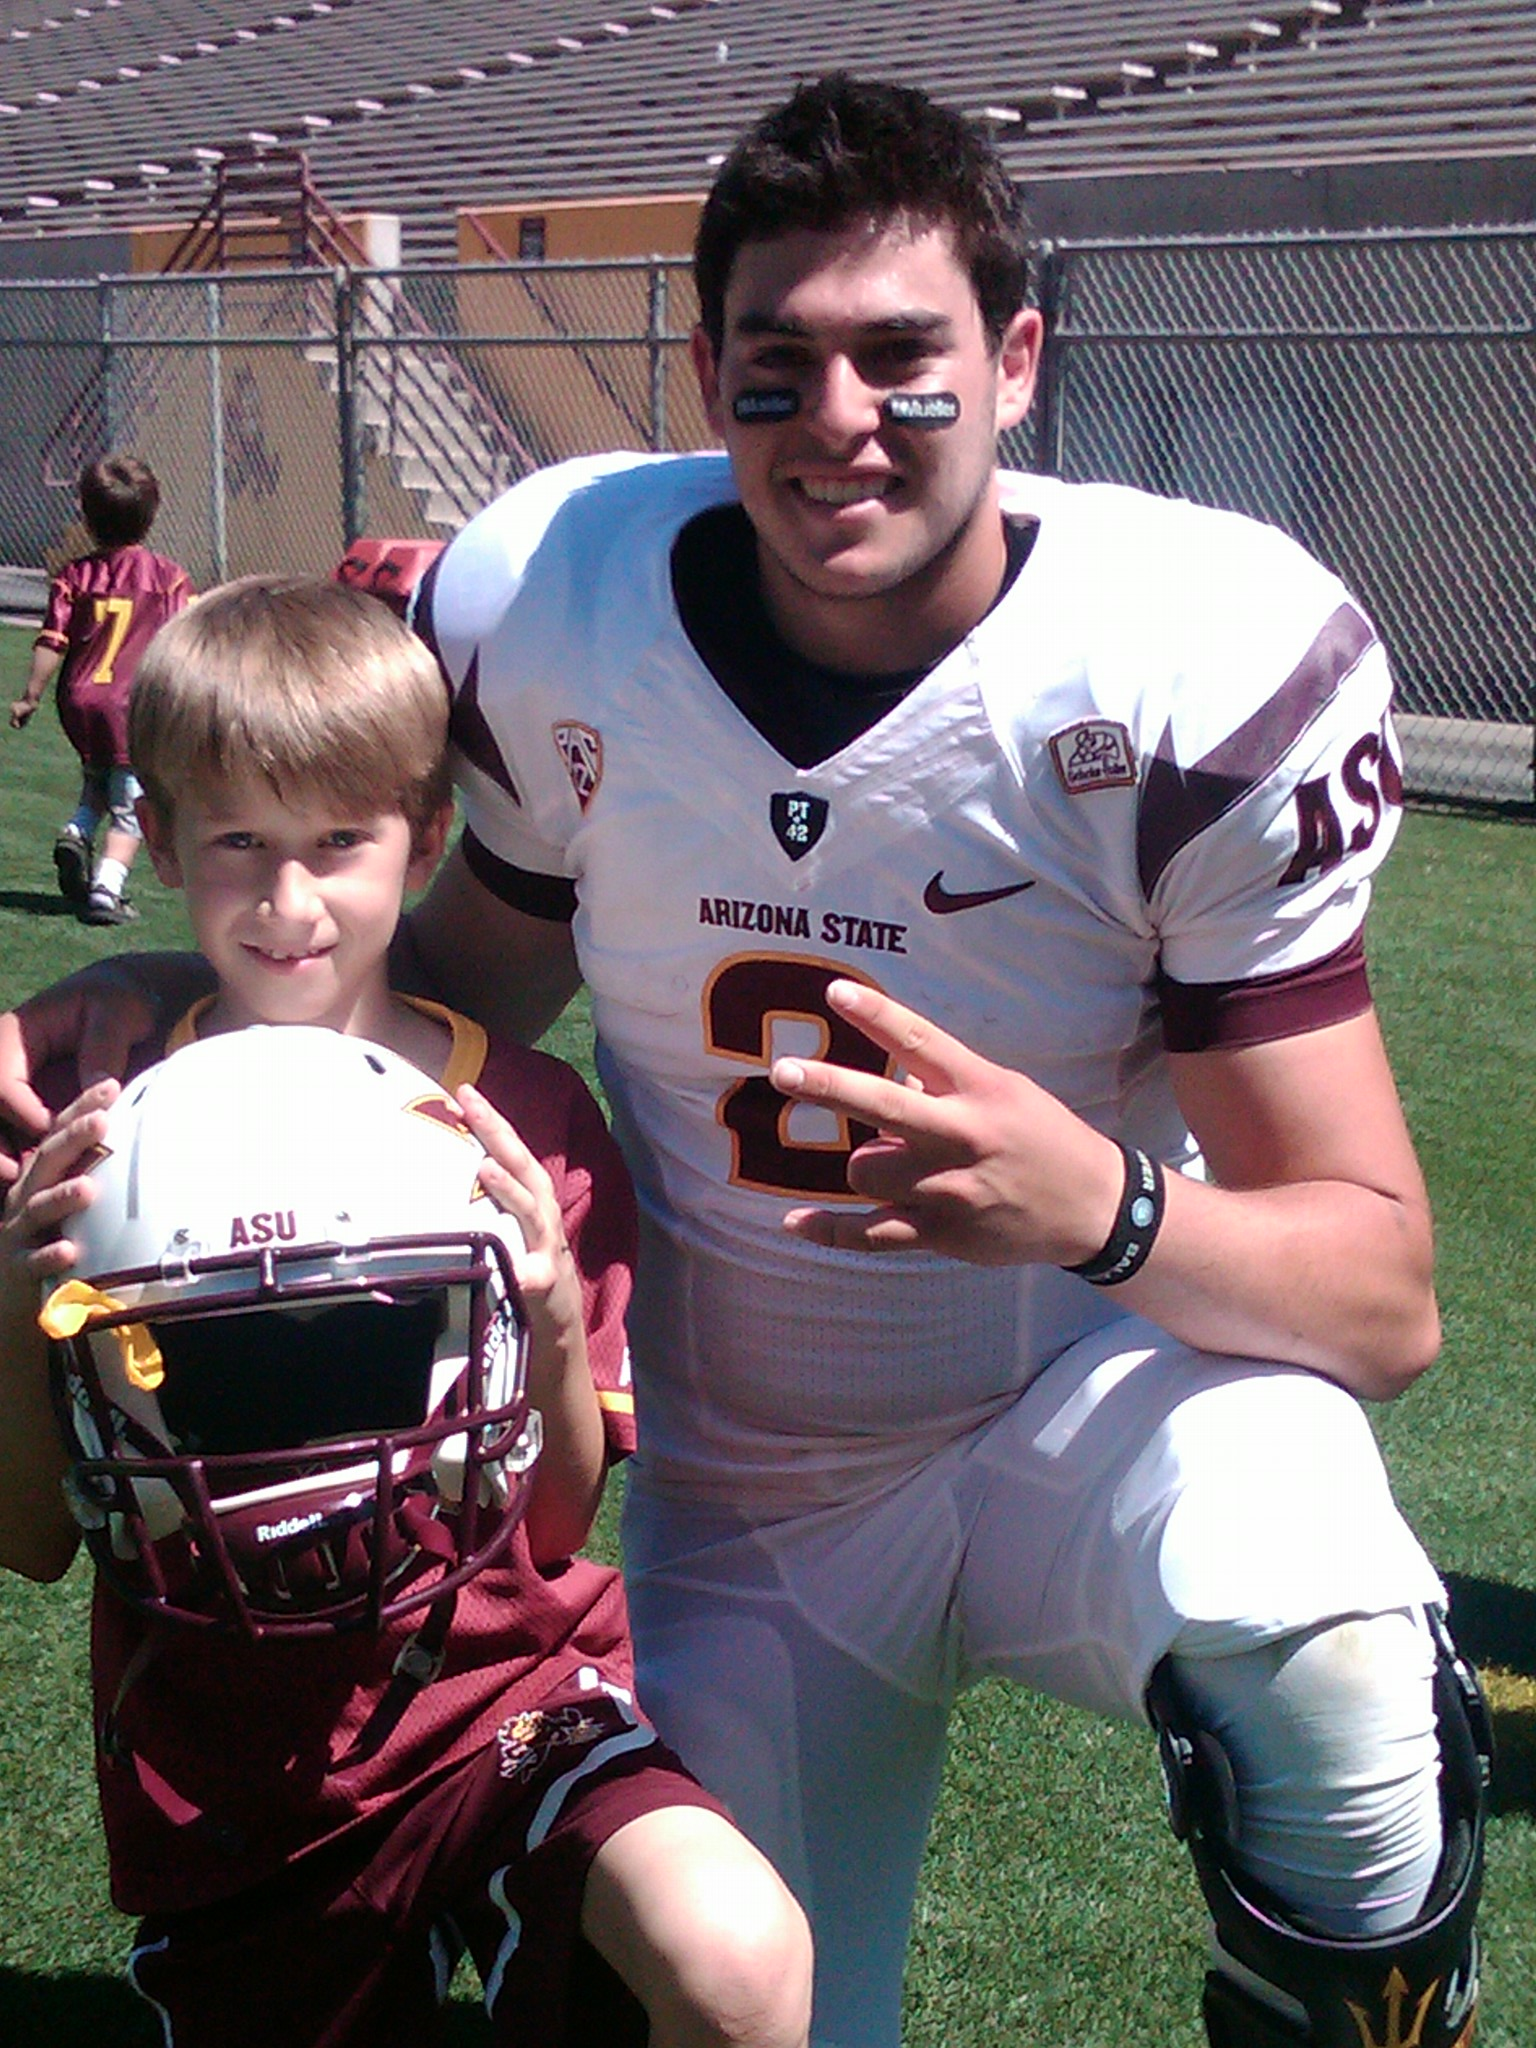 Josh with Mike Bercovici of ASU